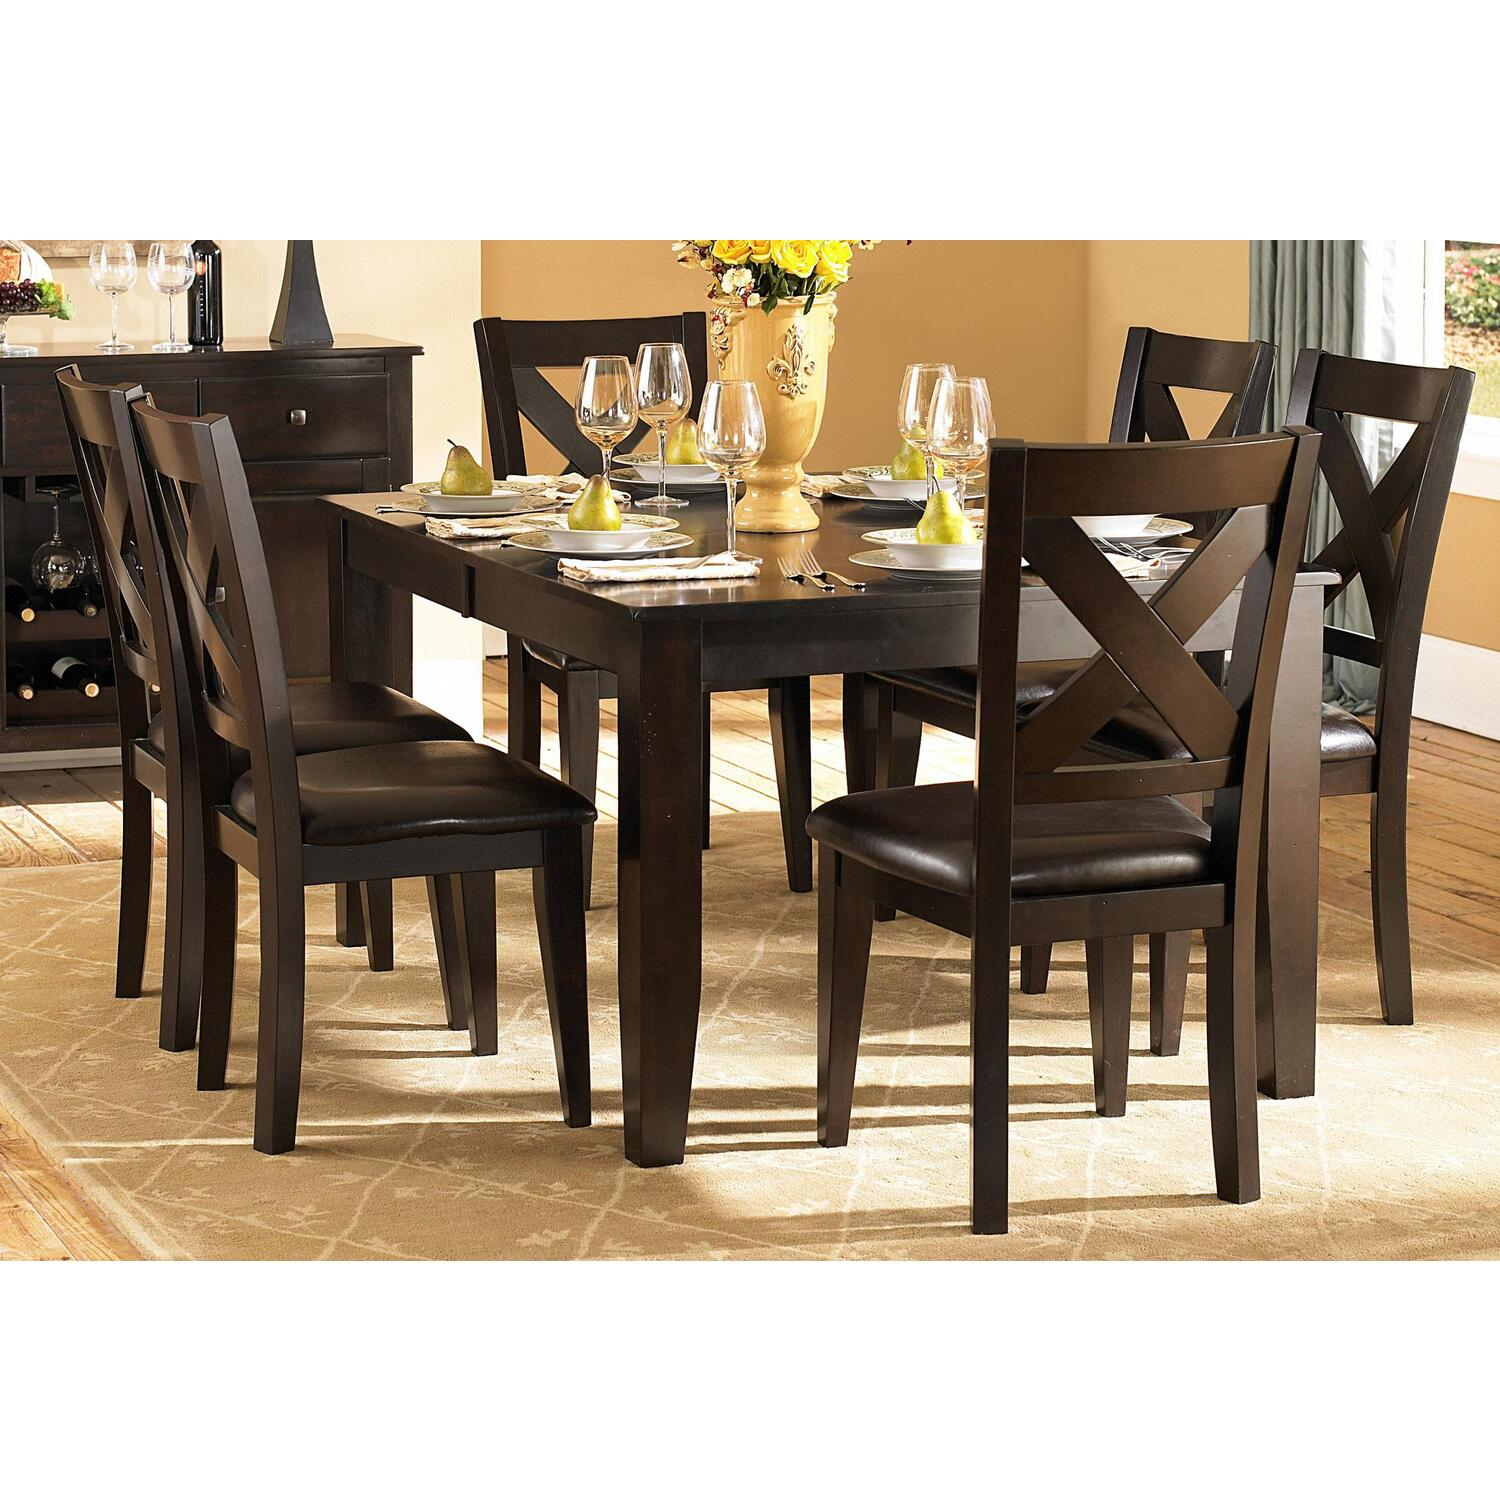 Furniture Home Goods Appliances Athletic Gear Fitness  : d137278x5crownpointdiningtableset from www.ojcommerce.com size 2232 x 1519 jpeg 532kB